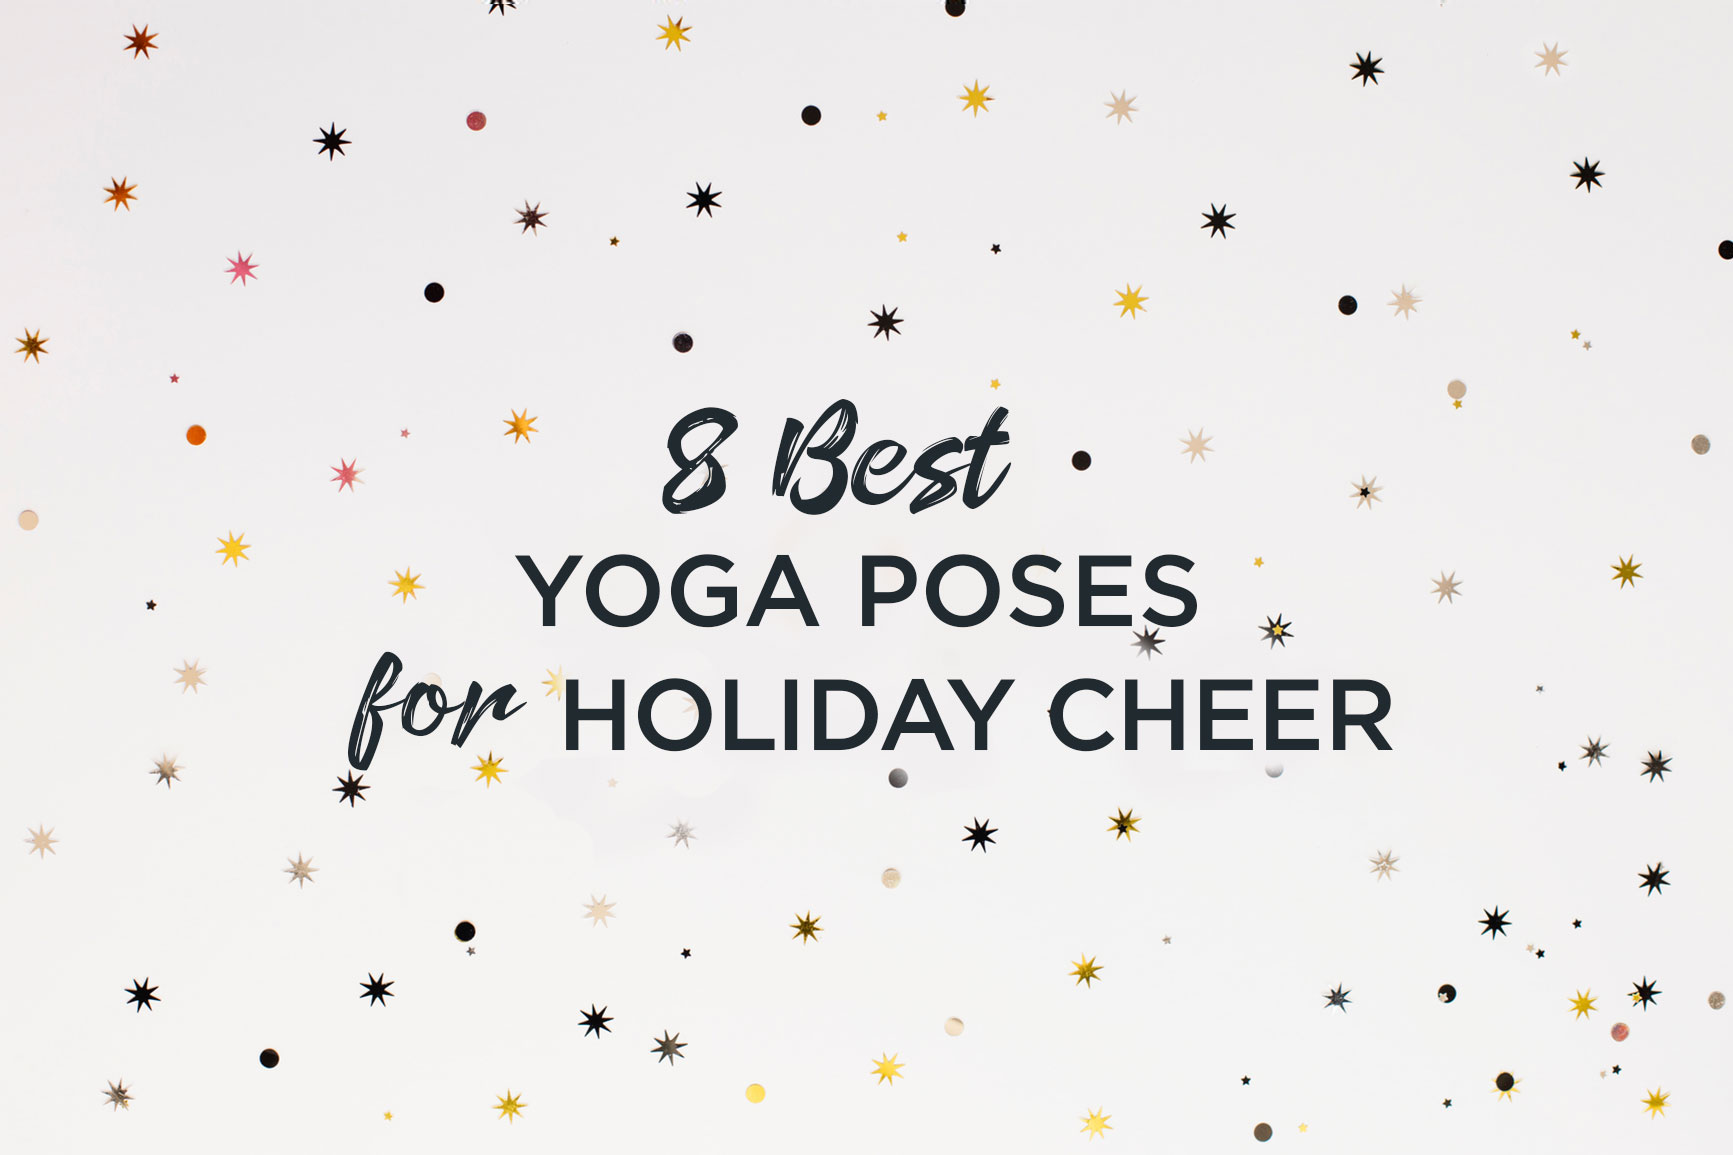 8 Best Yoga Poses for Holiday Cheer